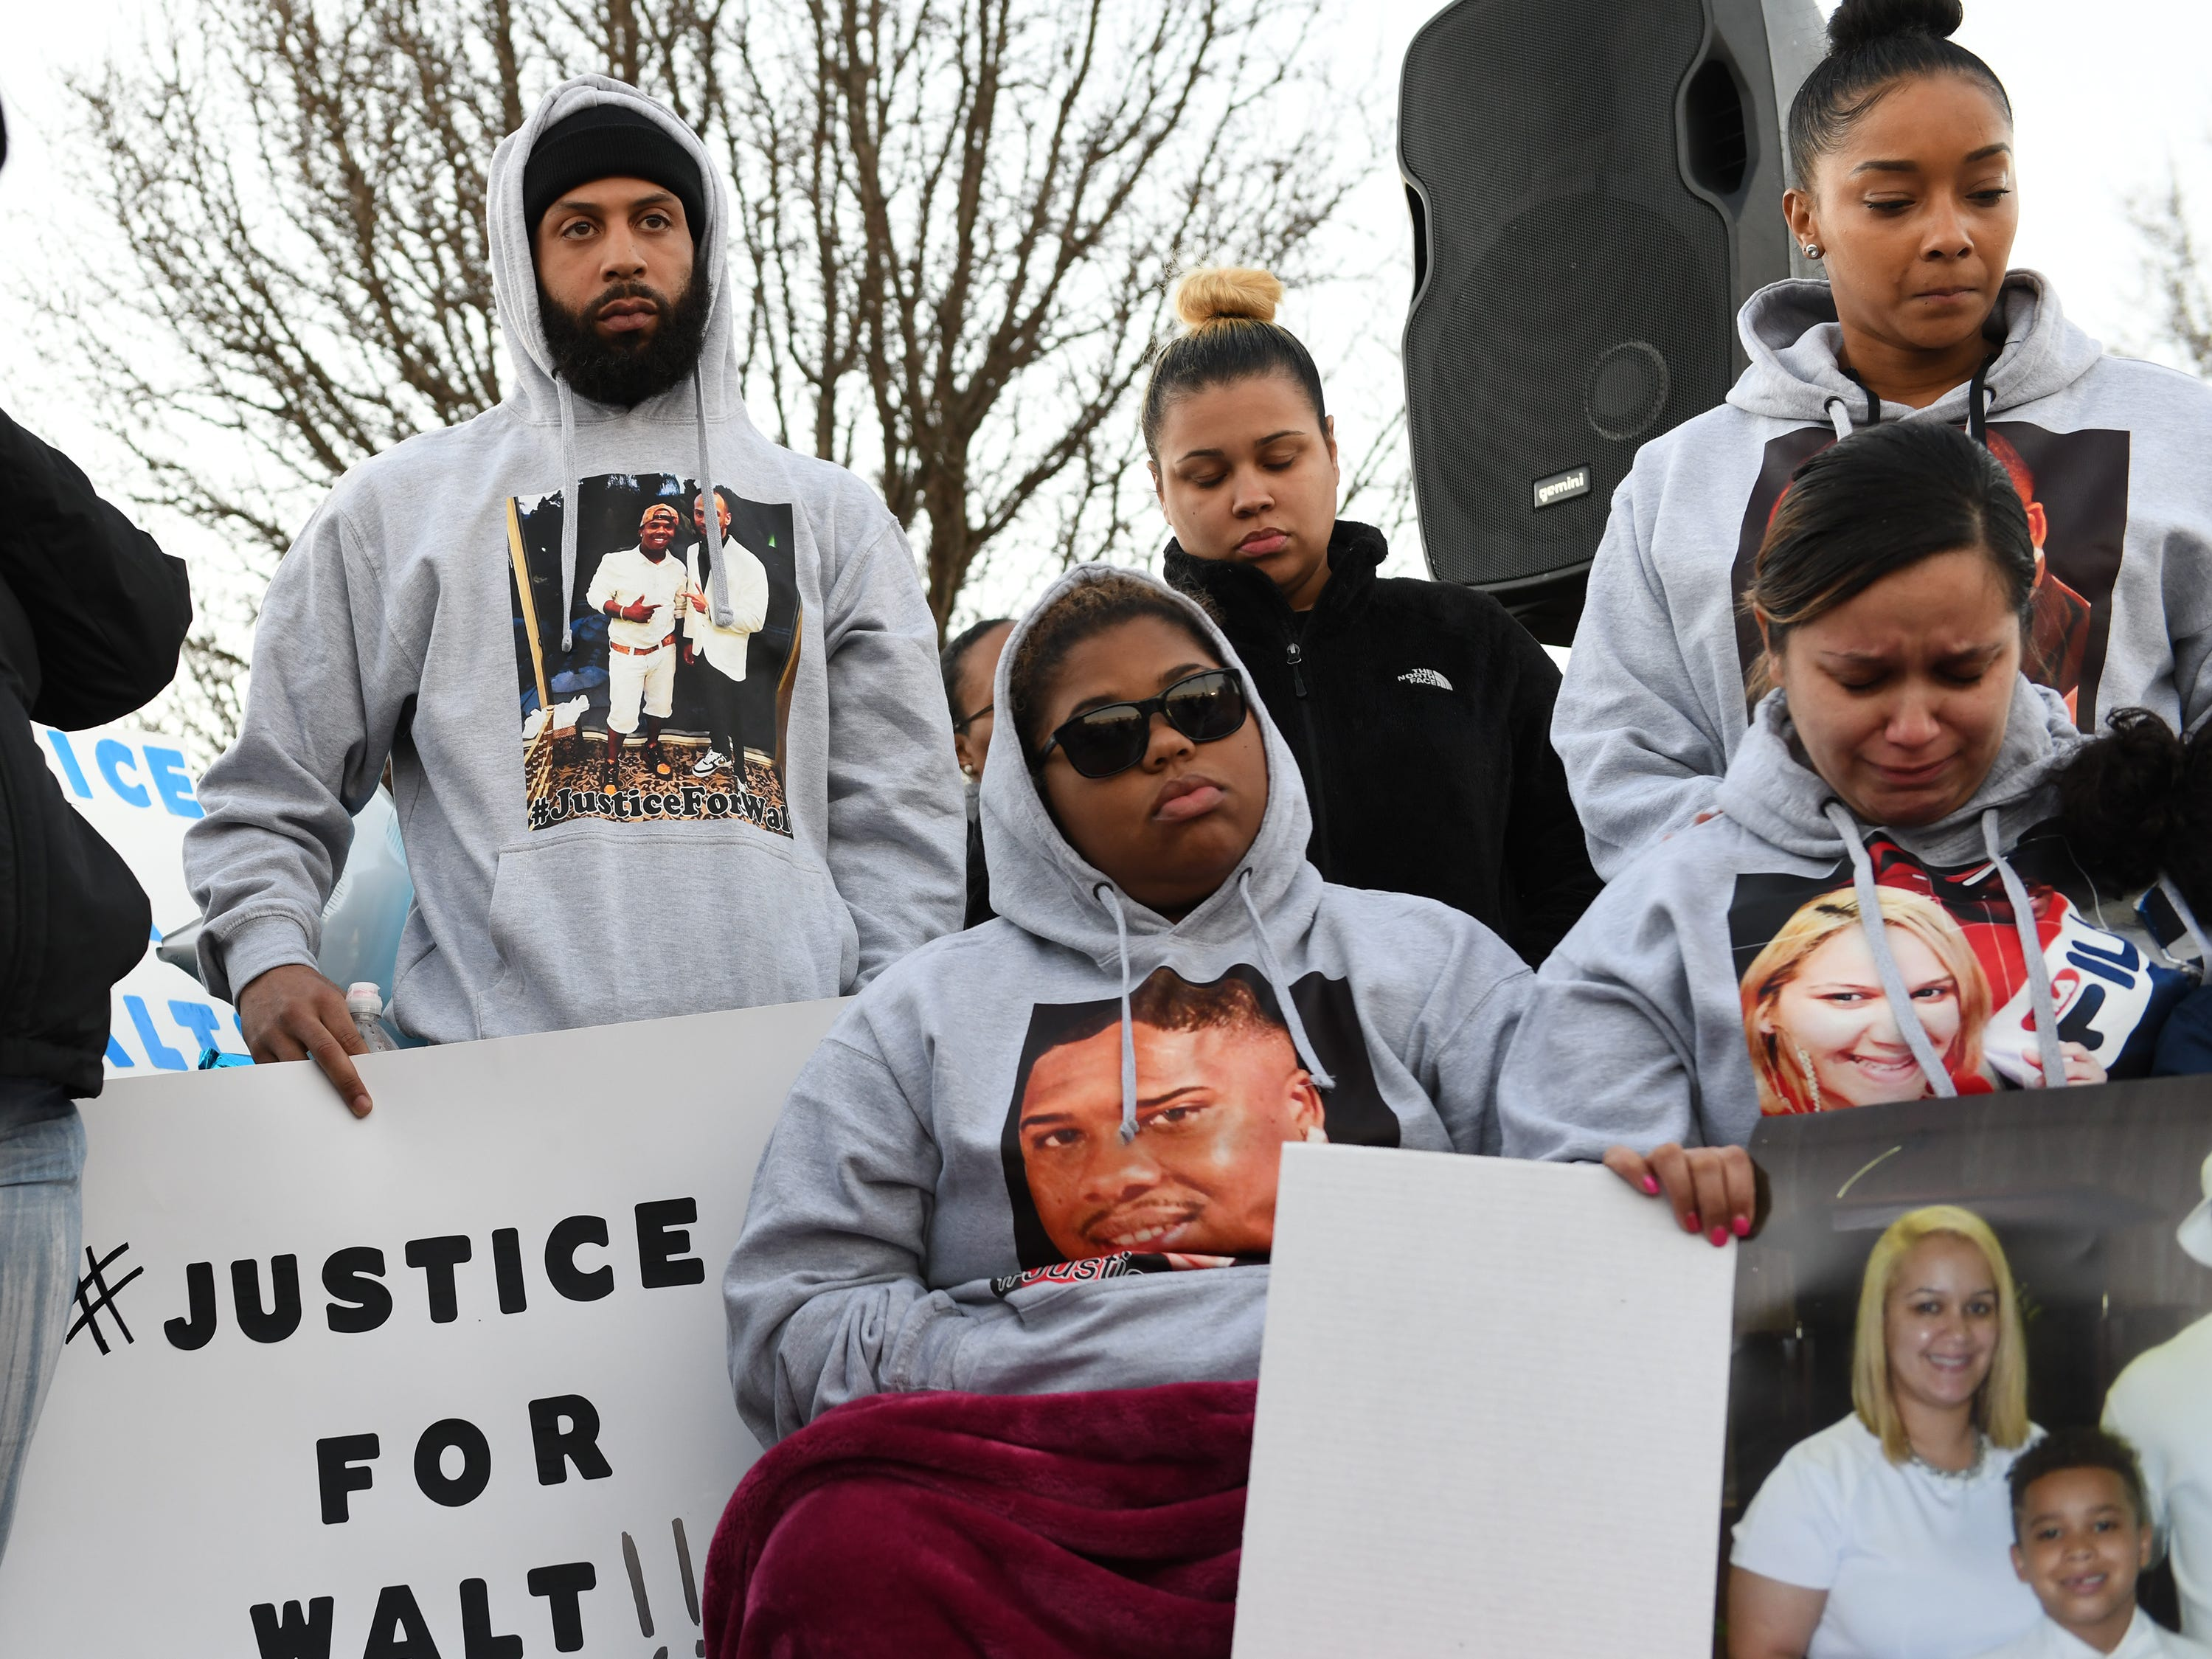 Family and friends gather at the Vineland Midget Football grounds during a vigil for 32-year-old Walter L. Brown III on Monday, Feb. 4, 2019. Brown was fatally shot during a reported home invasion last week.